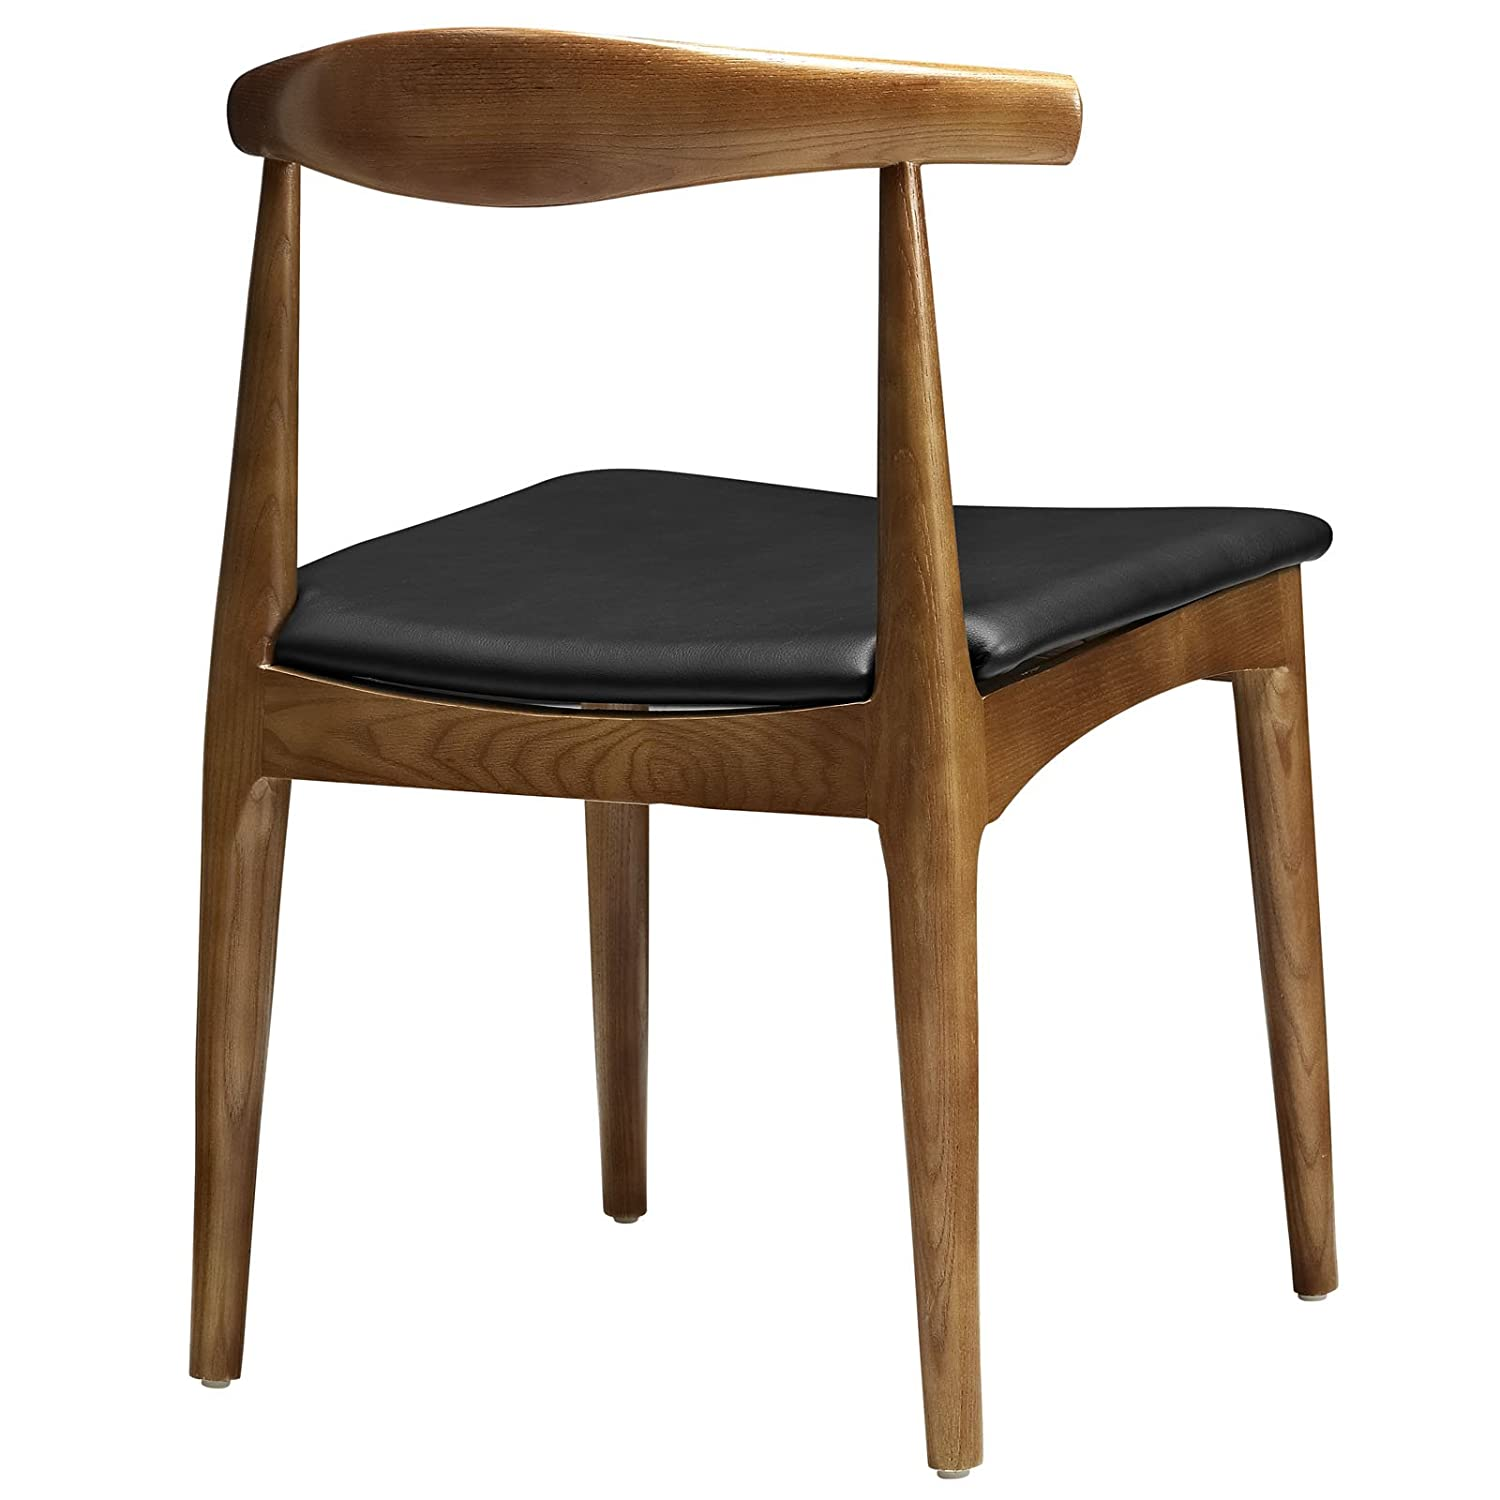 Modway Hans Wegner Style Elbow Dining Side Chair With Faux Leather Seat:  Amazon.ca: Home U0026 Kitchen